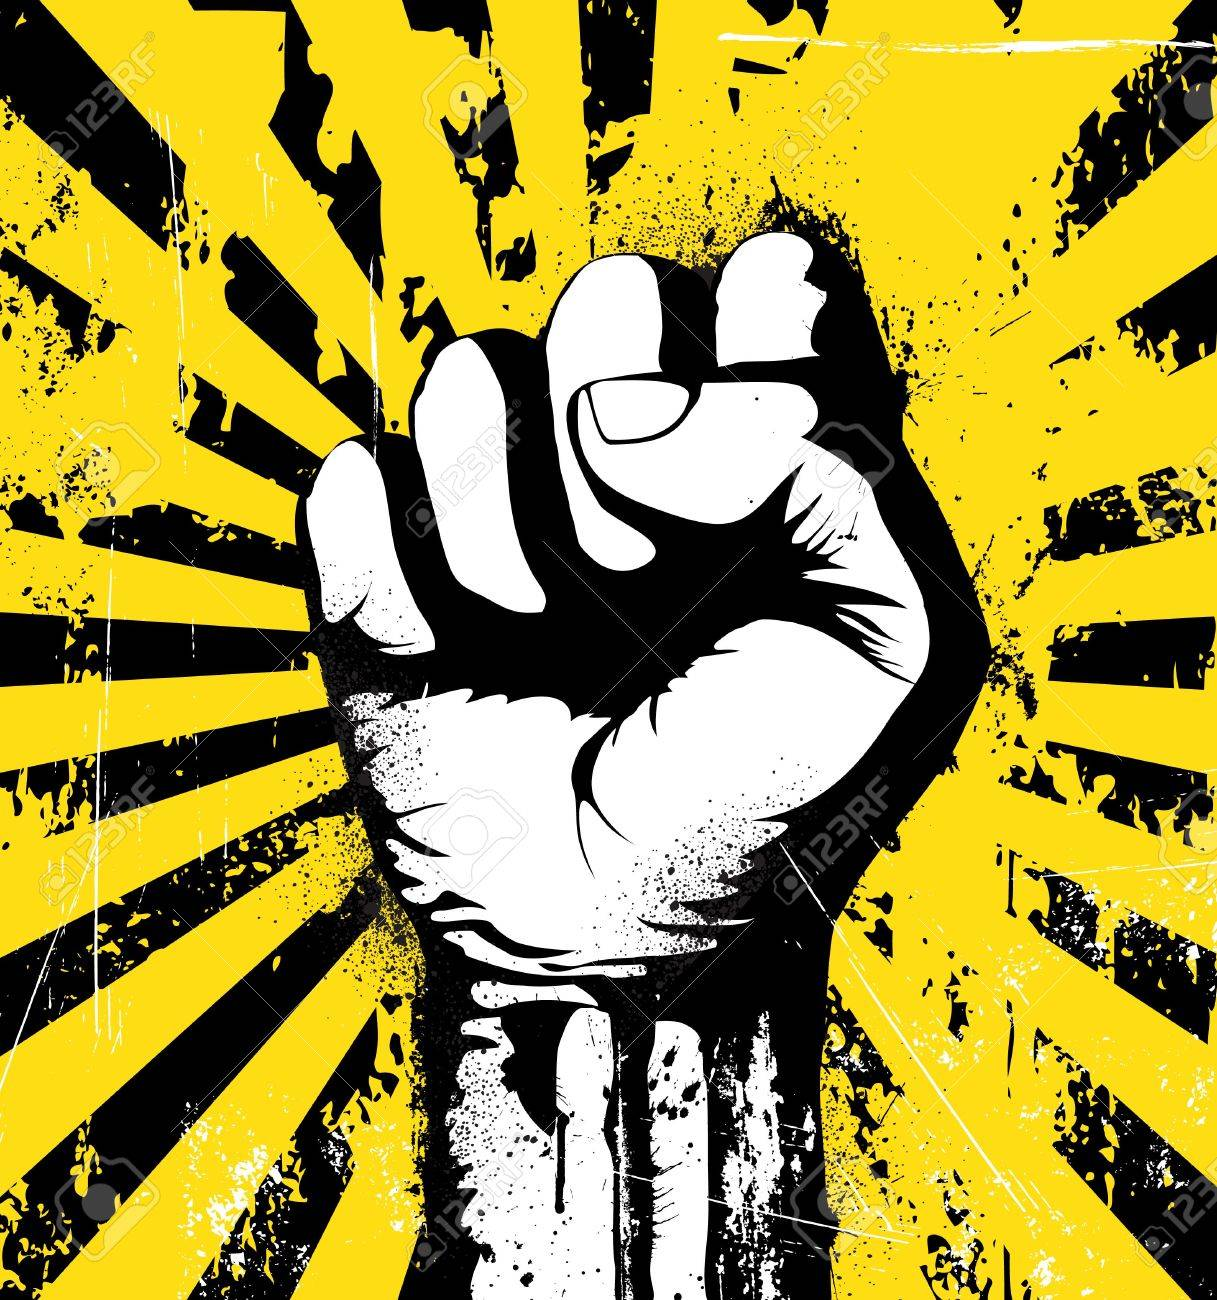 illustration of clenched fist held high in protest on the yellow grunge urban background Stock Illustration - 5611430